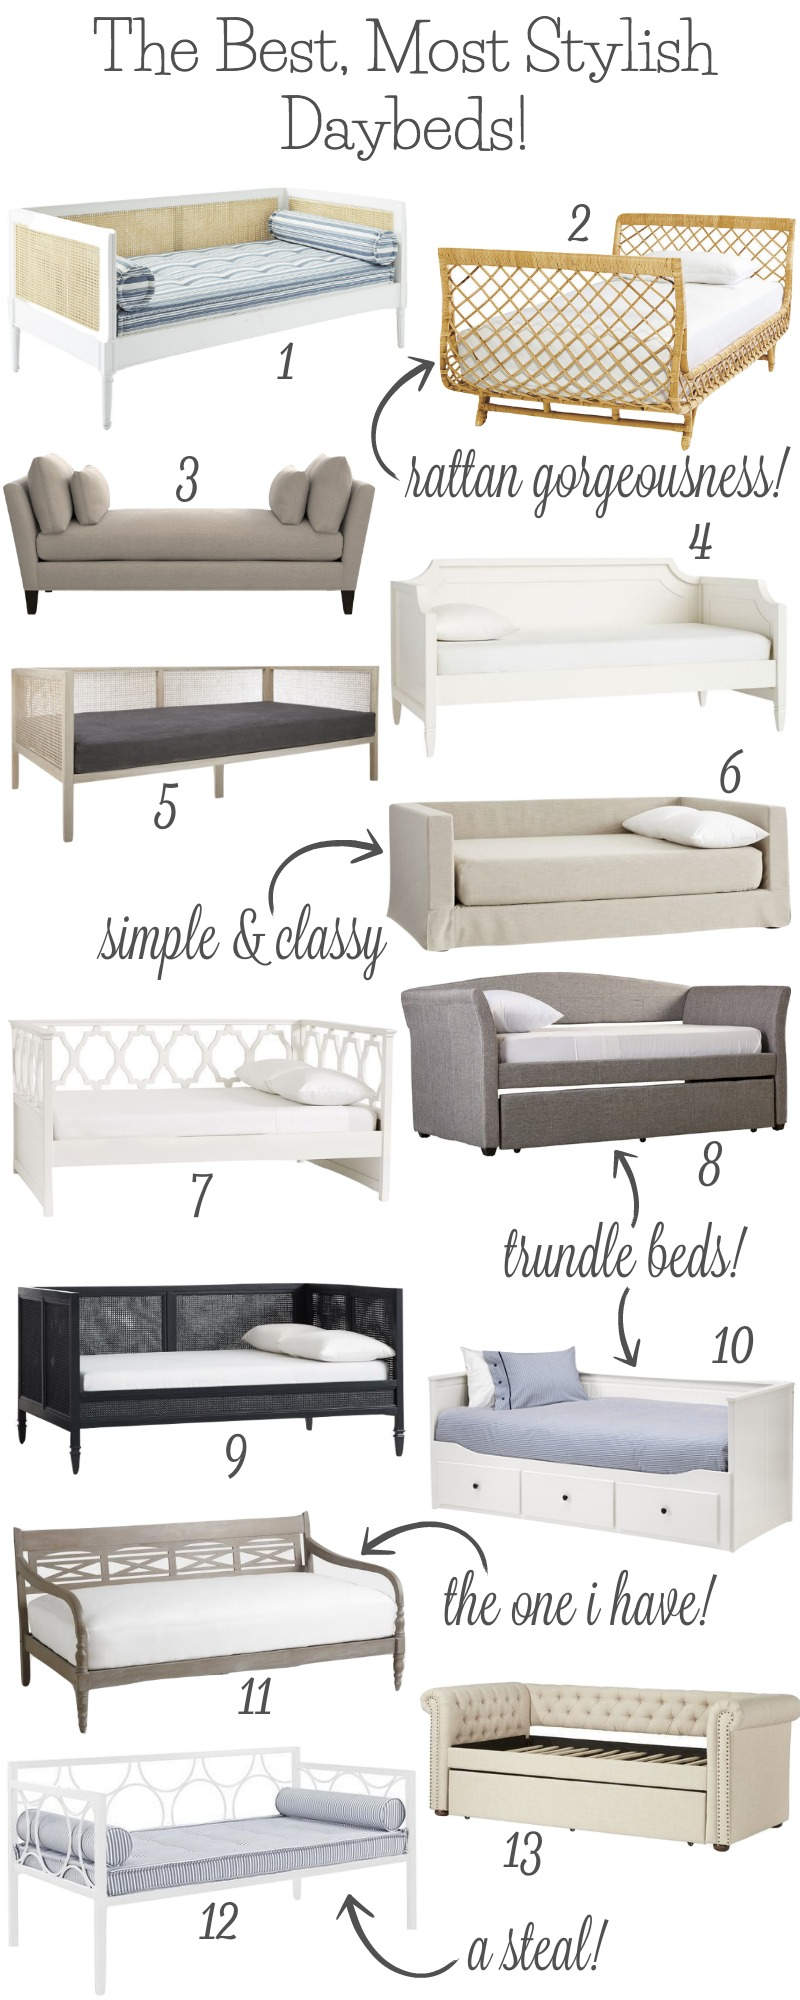 So many stylish twin daybed options! Love the ones with trundles (an extra spot for guests to sleep would be the best)! Lots of favorites here!